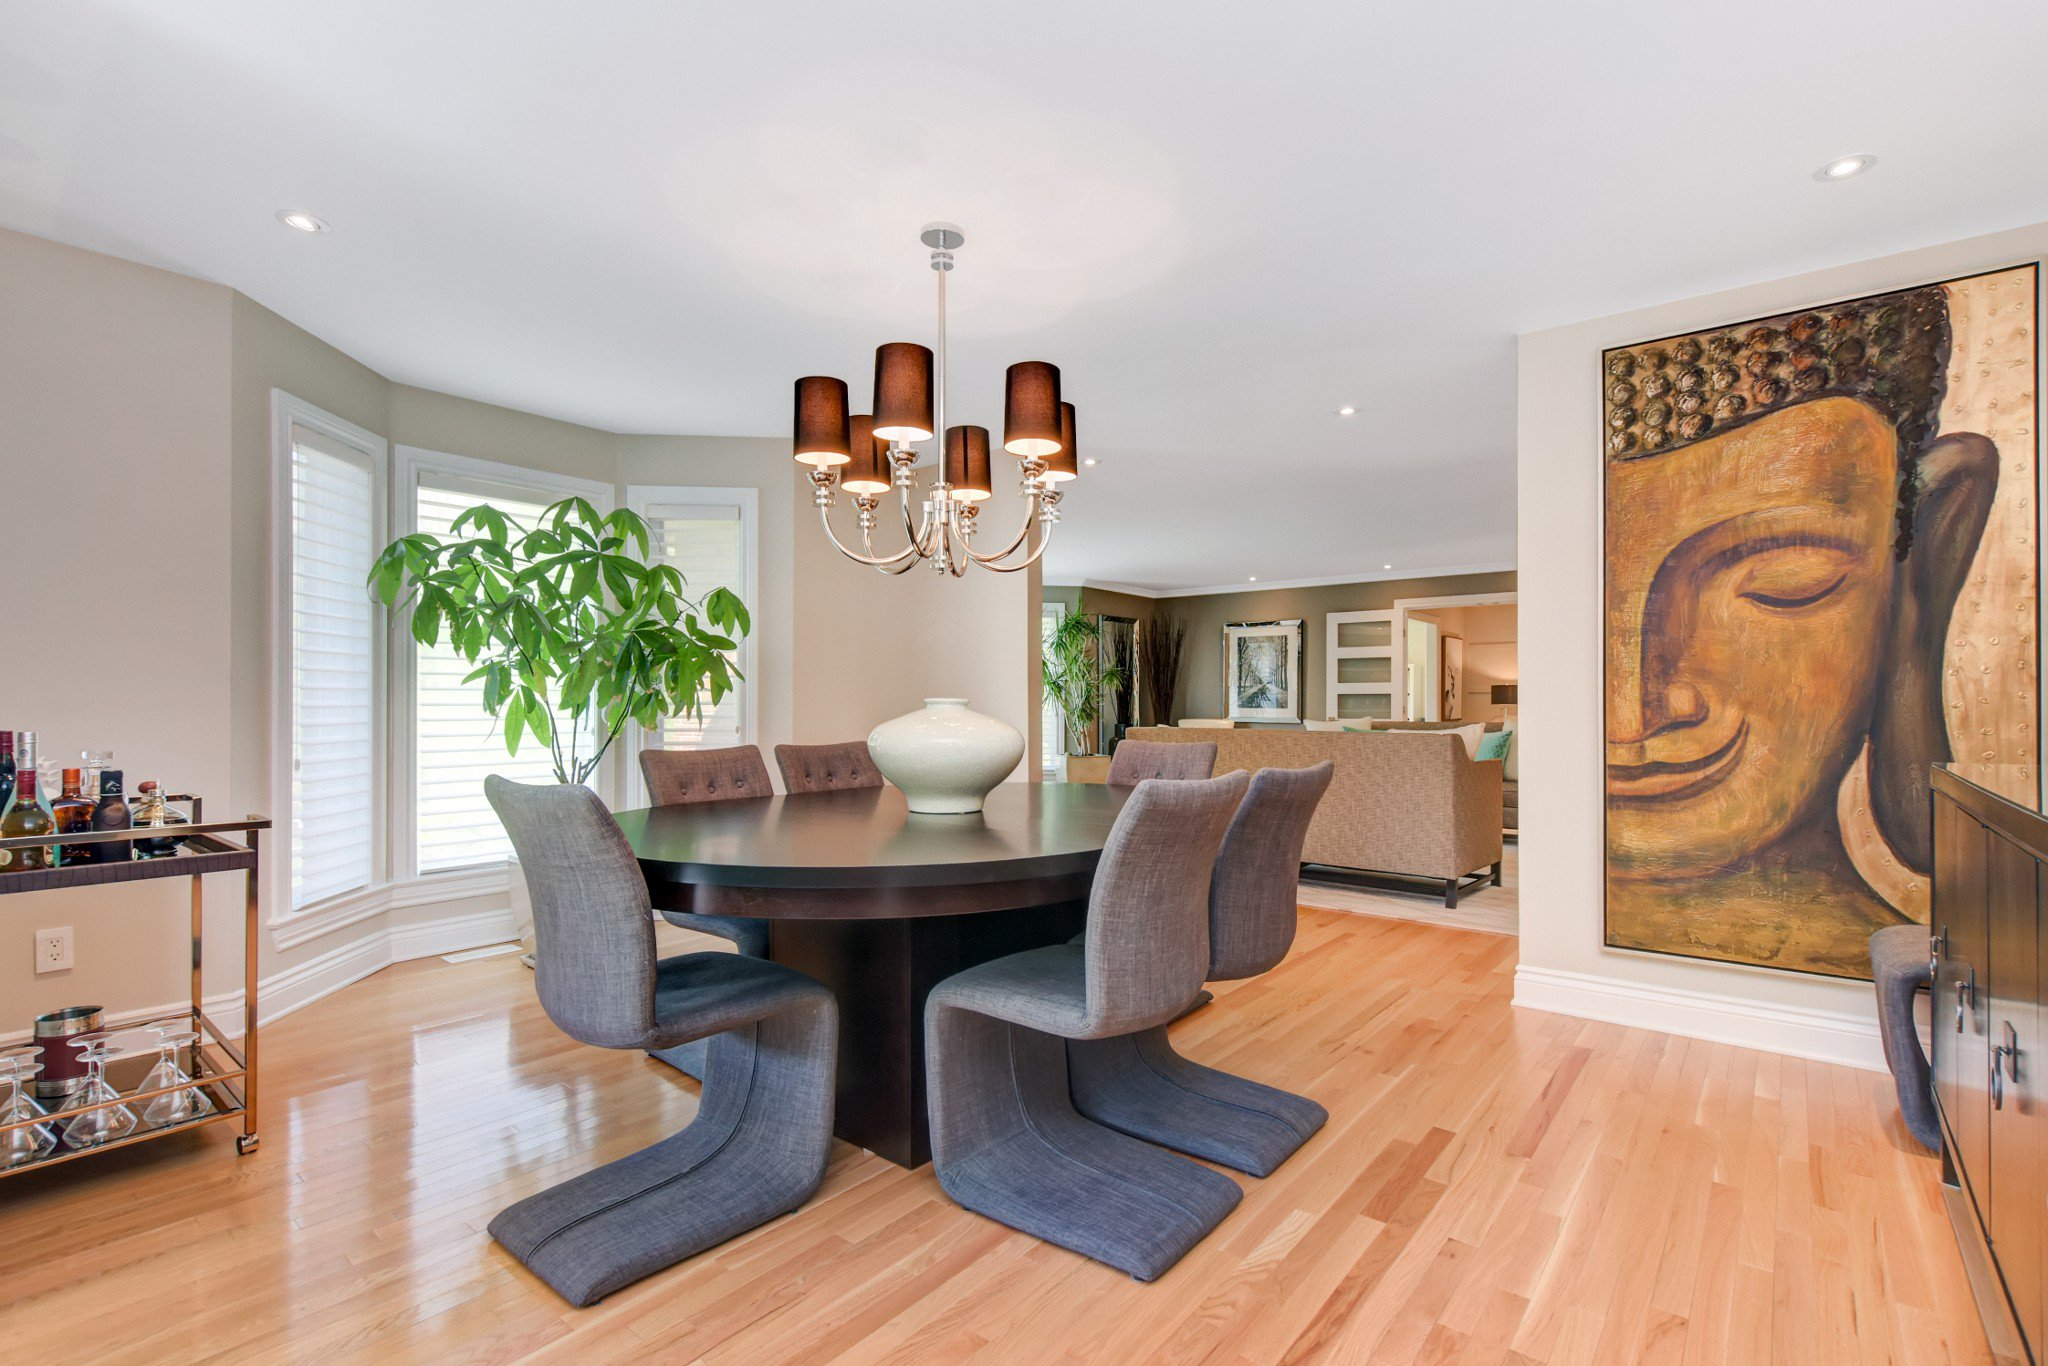 Photo 18: Photos: 1490 REINDEER WAY.: Greely House for sale (Ottawa)  : MLS®# 1109530